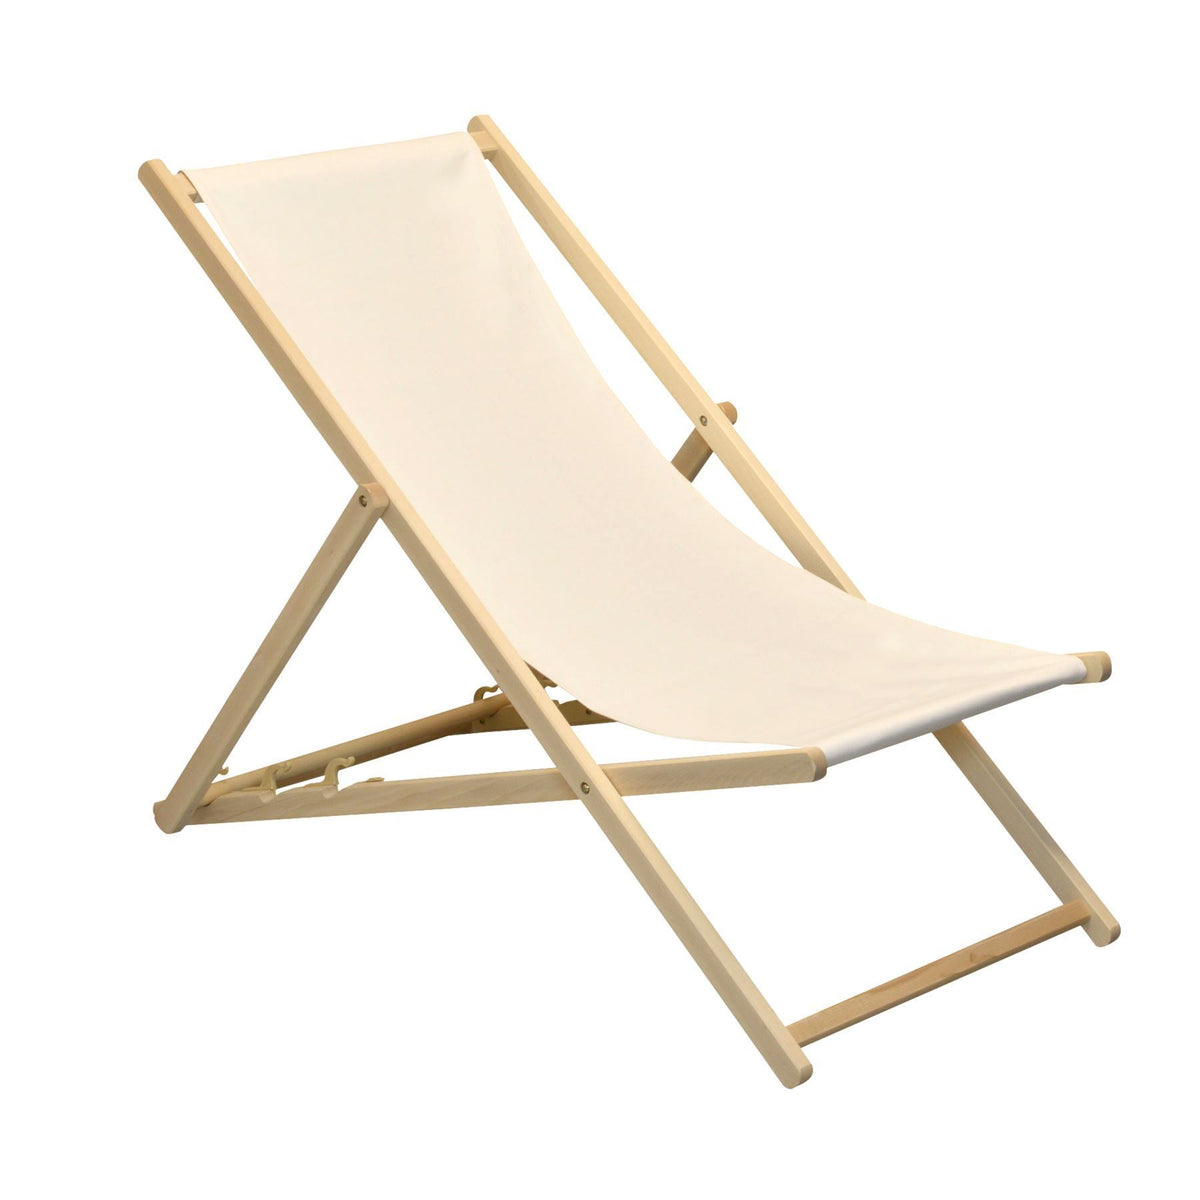 Harbour Housewares Beach Deck Chair - Cream with Beech Wood Frame